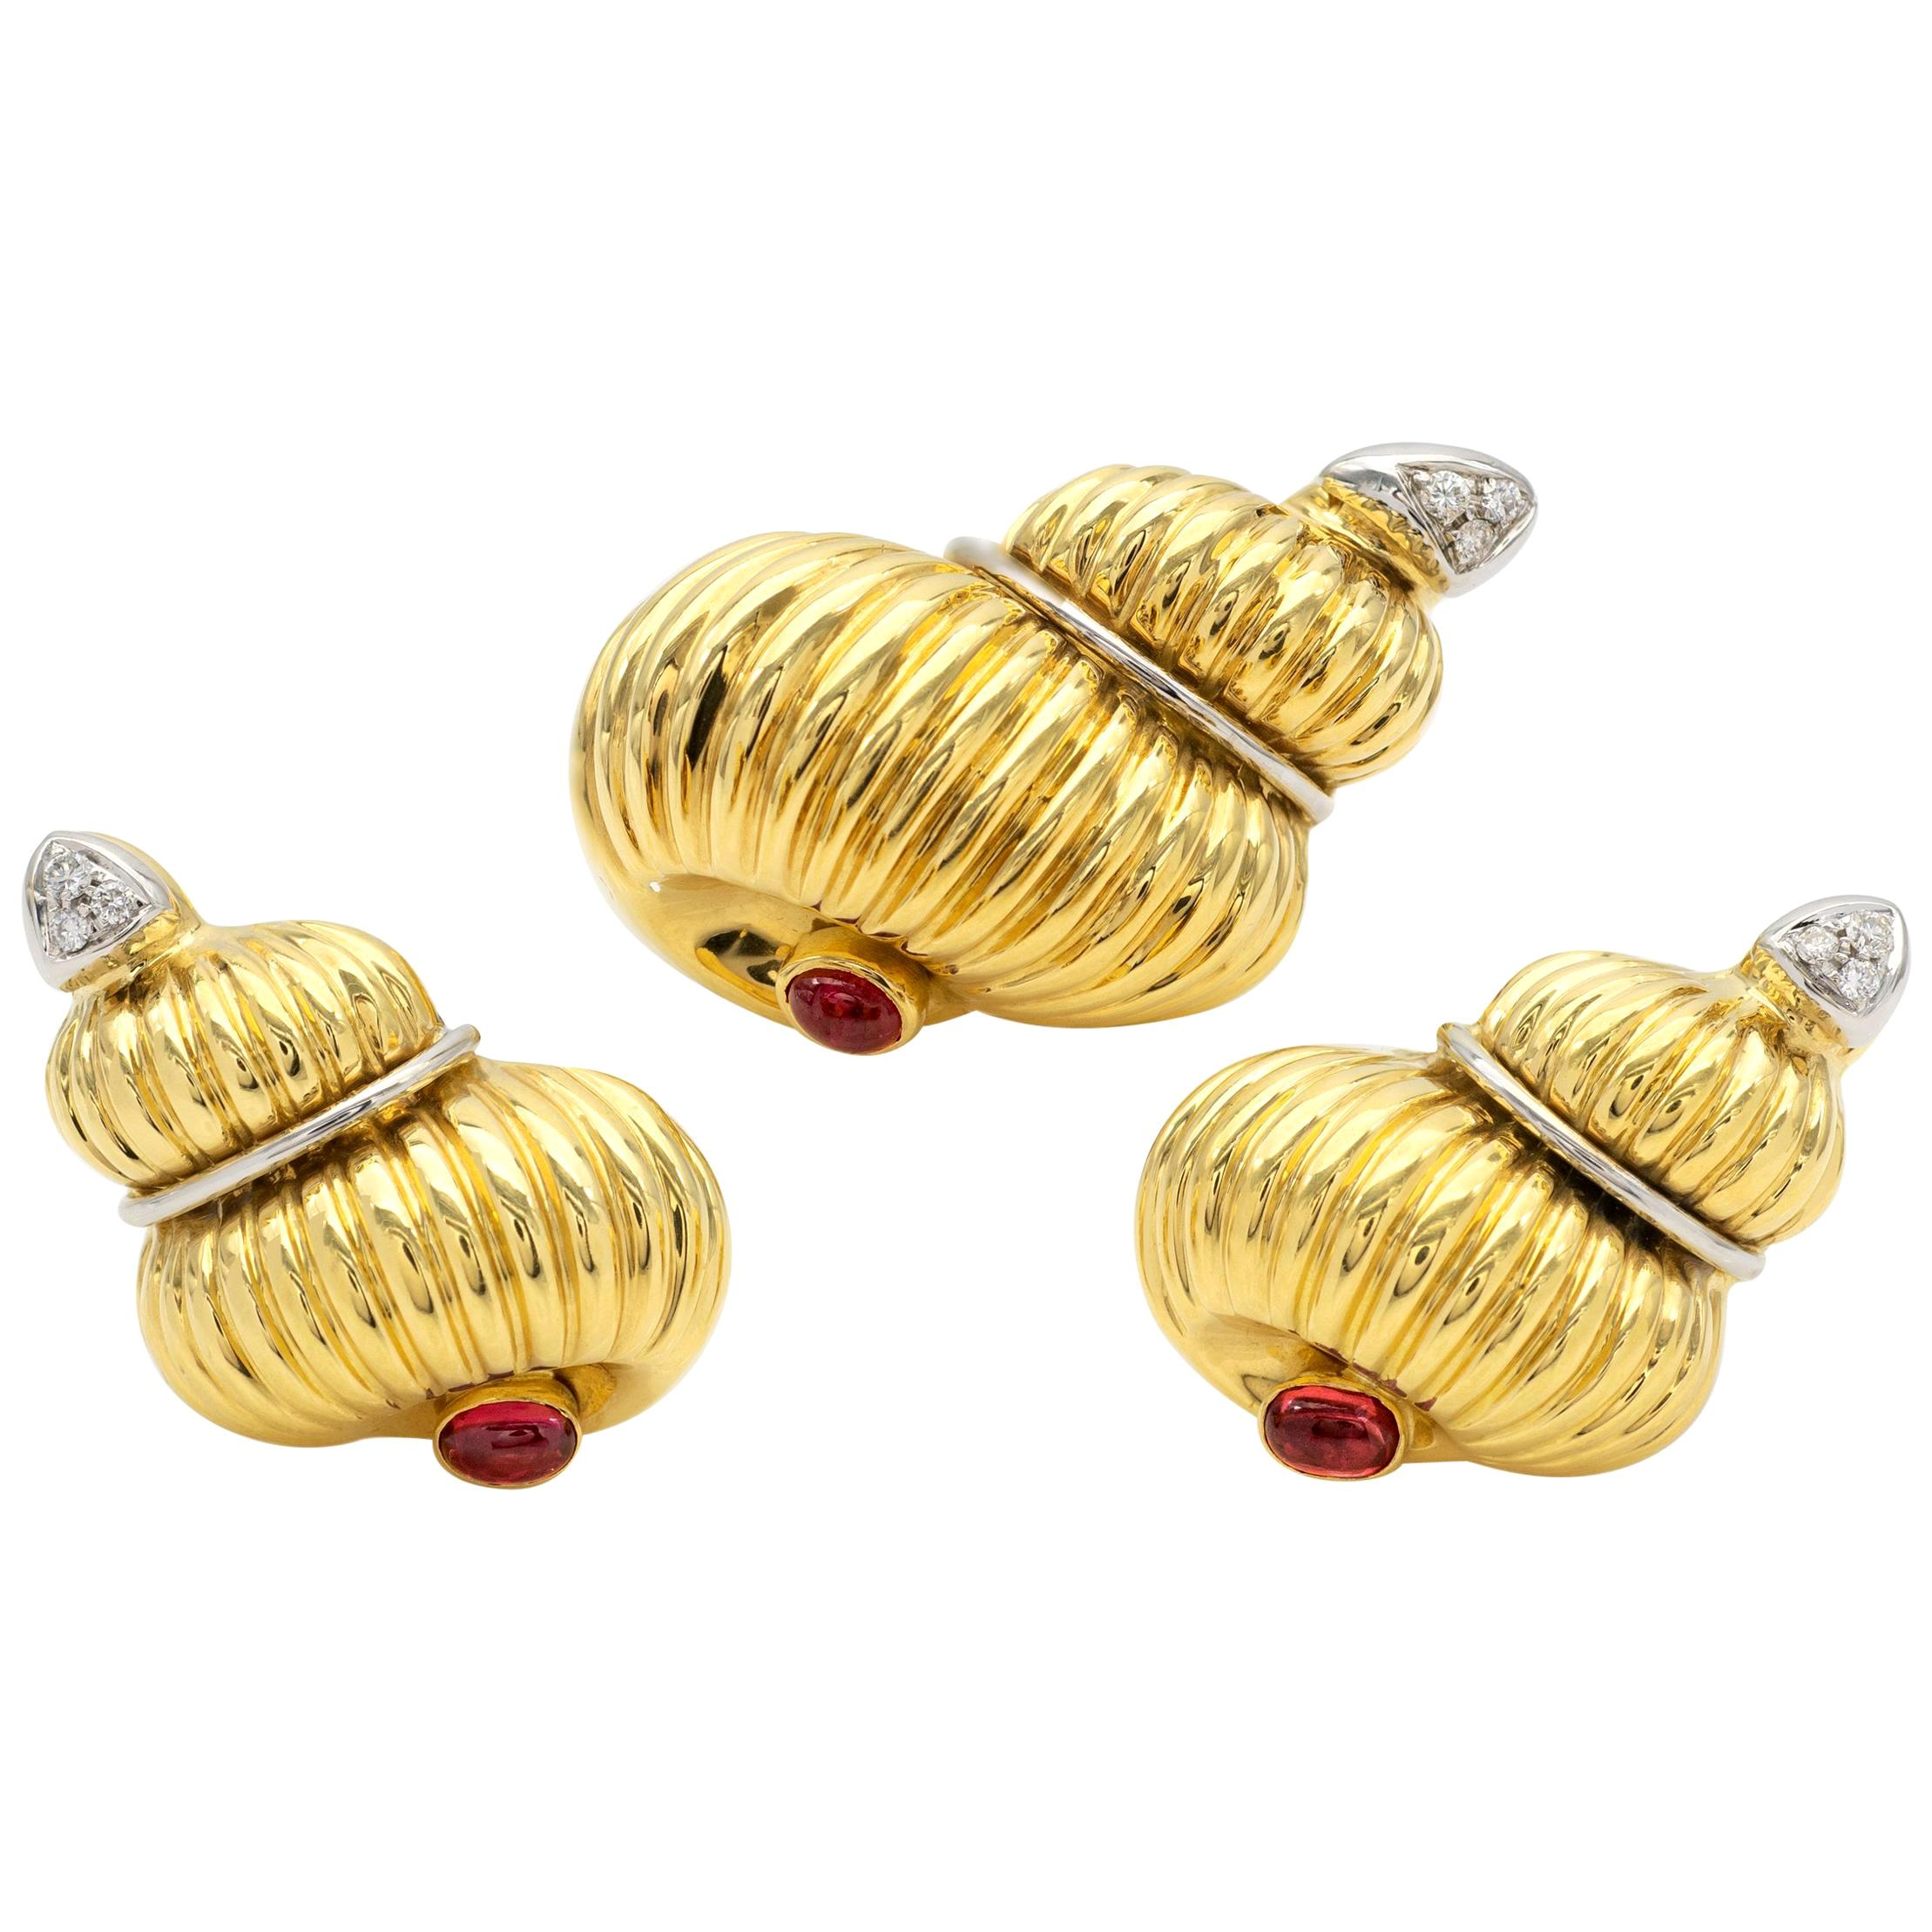 18 Karat Gold Ruby and Diamond Earrings and Brooch Jewelry Set